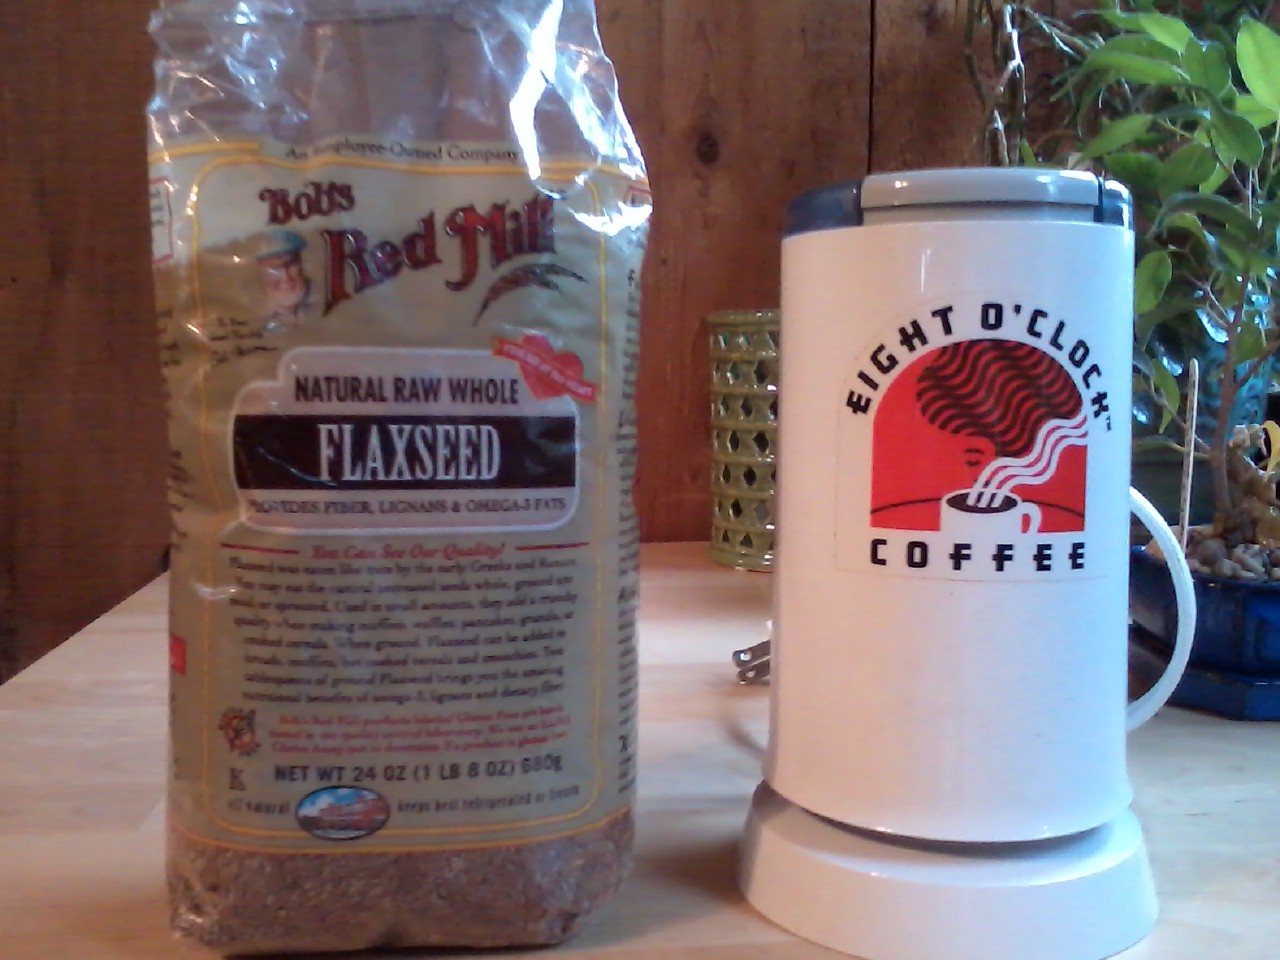 Flaxseed and Grinder